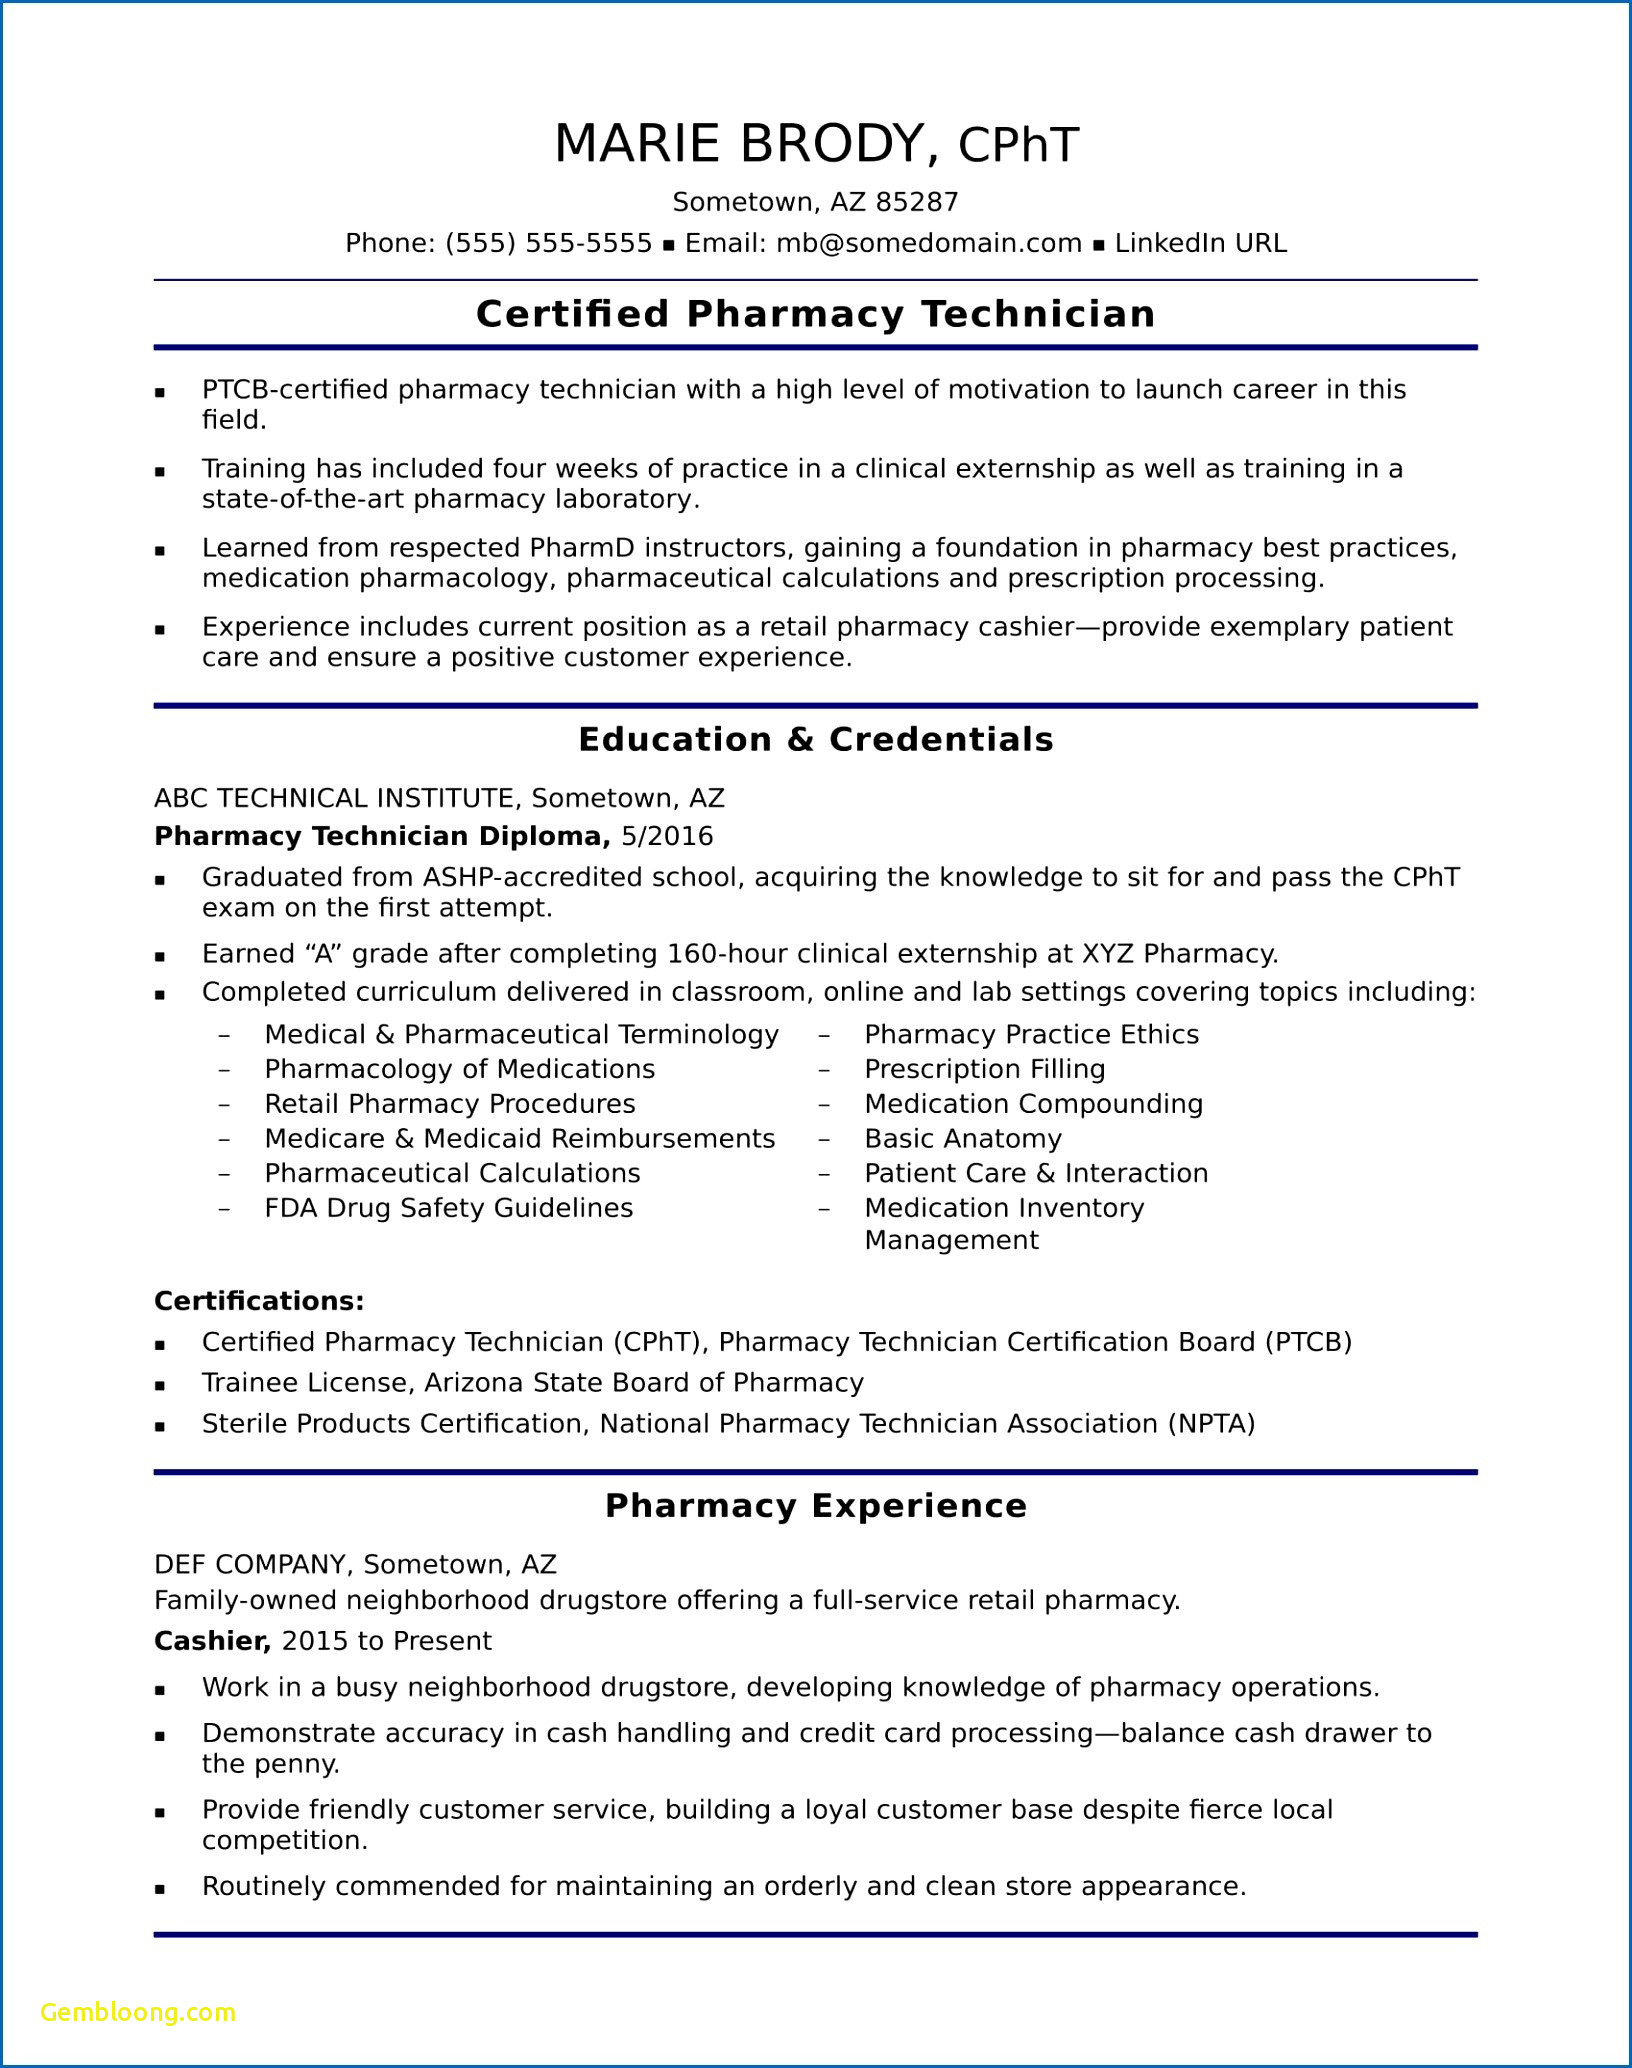 Resume for Pharmacy Technician - Luxury Pharmacy Tech Resume